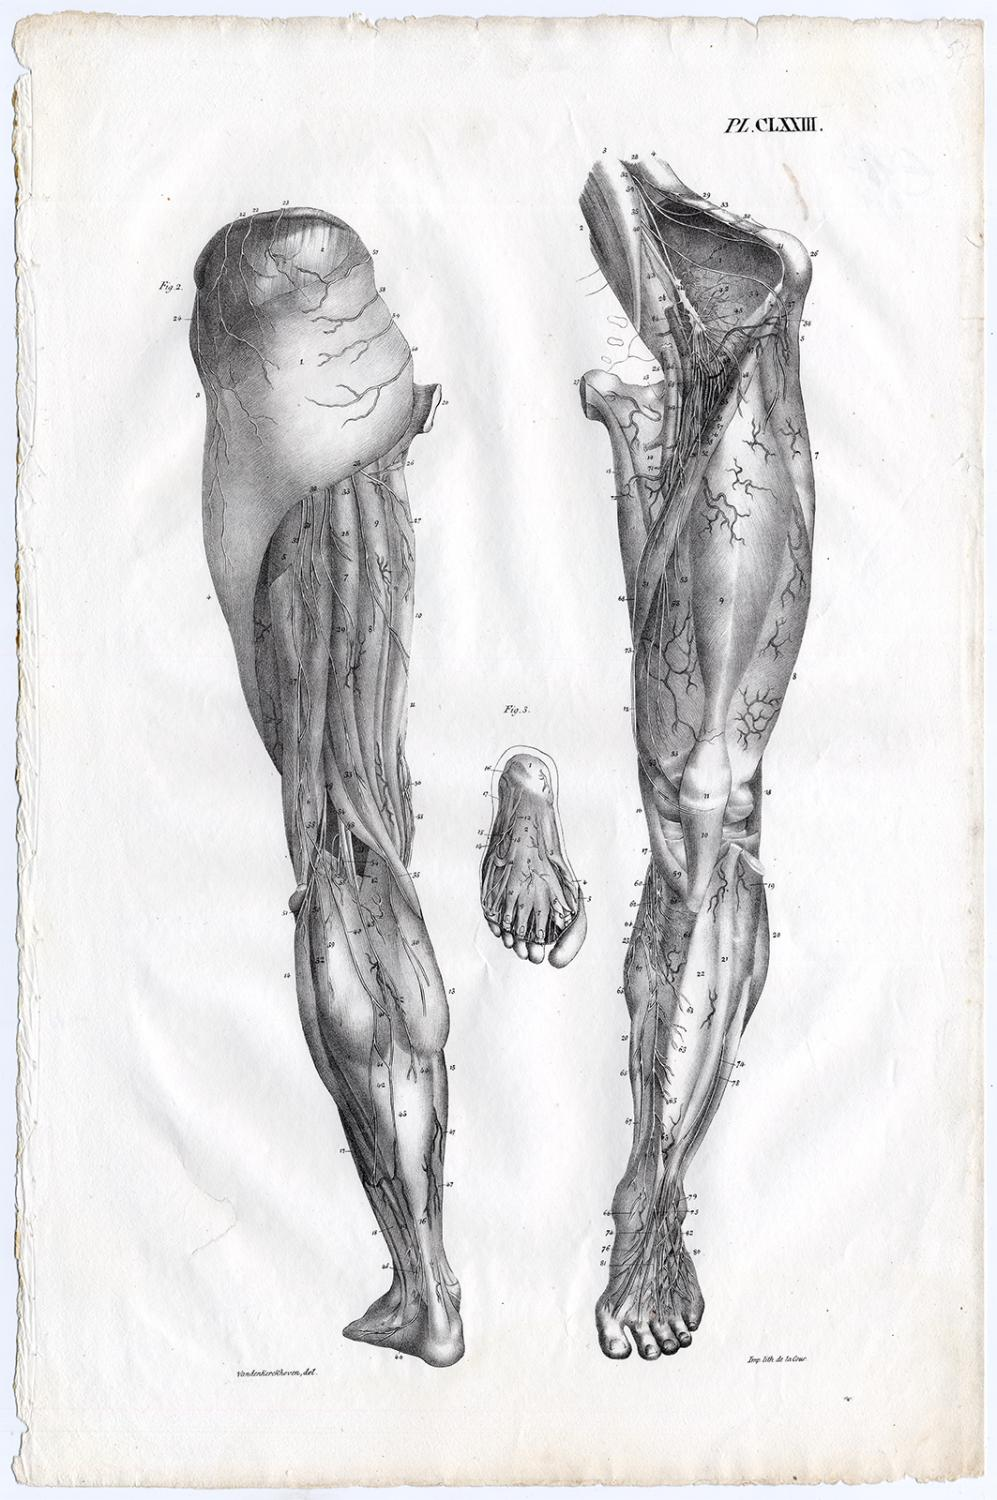 Antique Print Human Anatomy Artery Blood Vessel Leg Foot Clxxiii